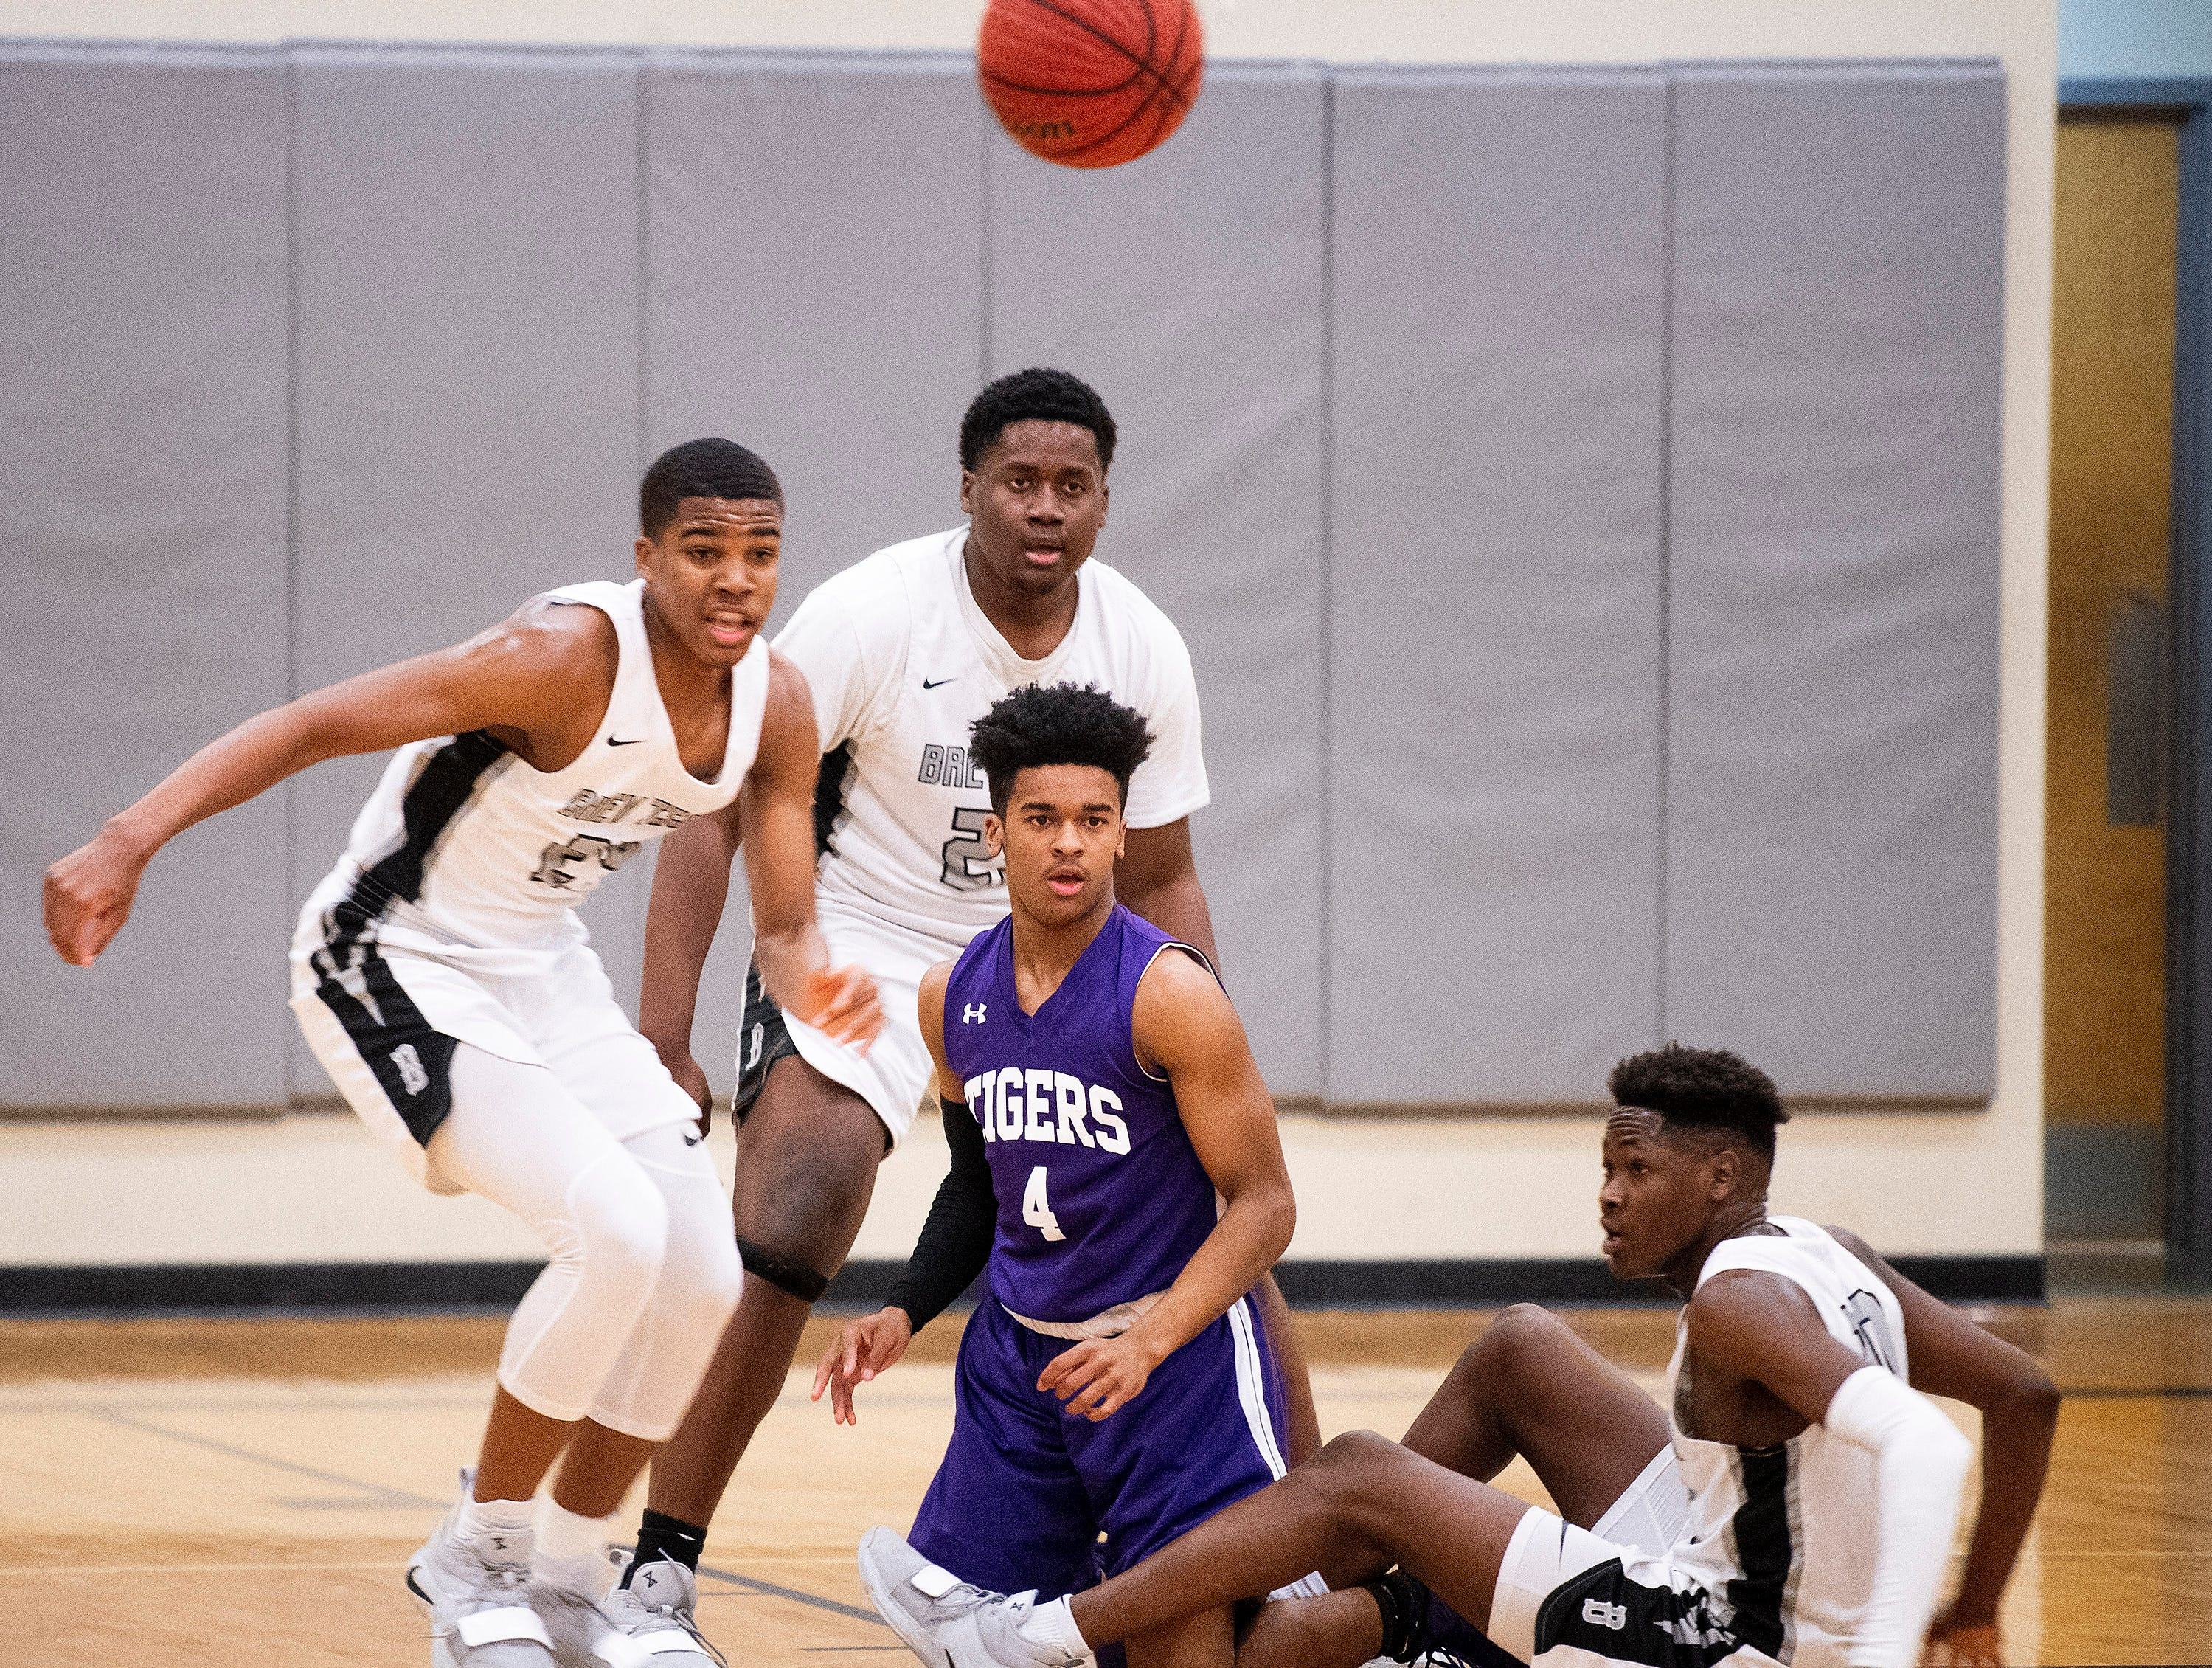 Brewbaker Tech against Tallassee at the BrewTech campus in Montgomery, Ala., on Thursday February 7, 2019.